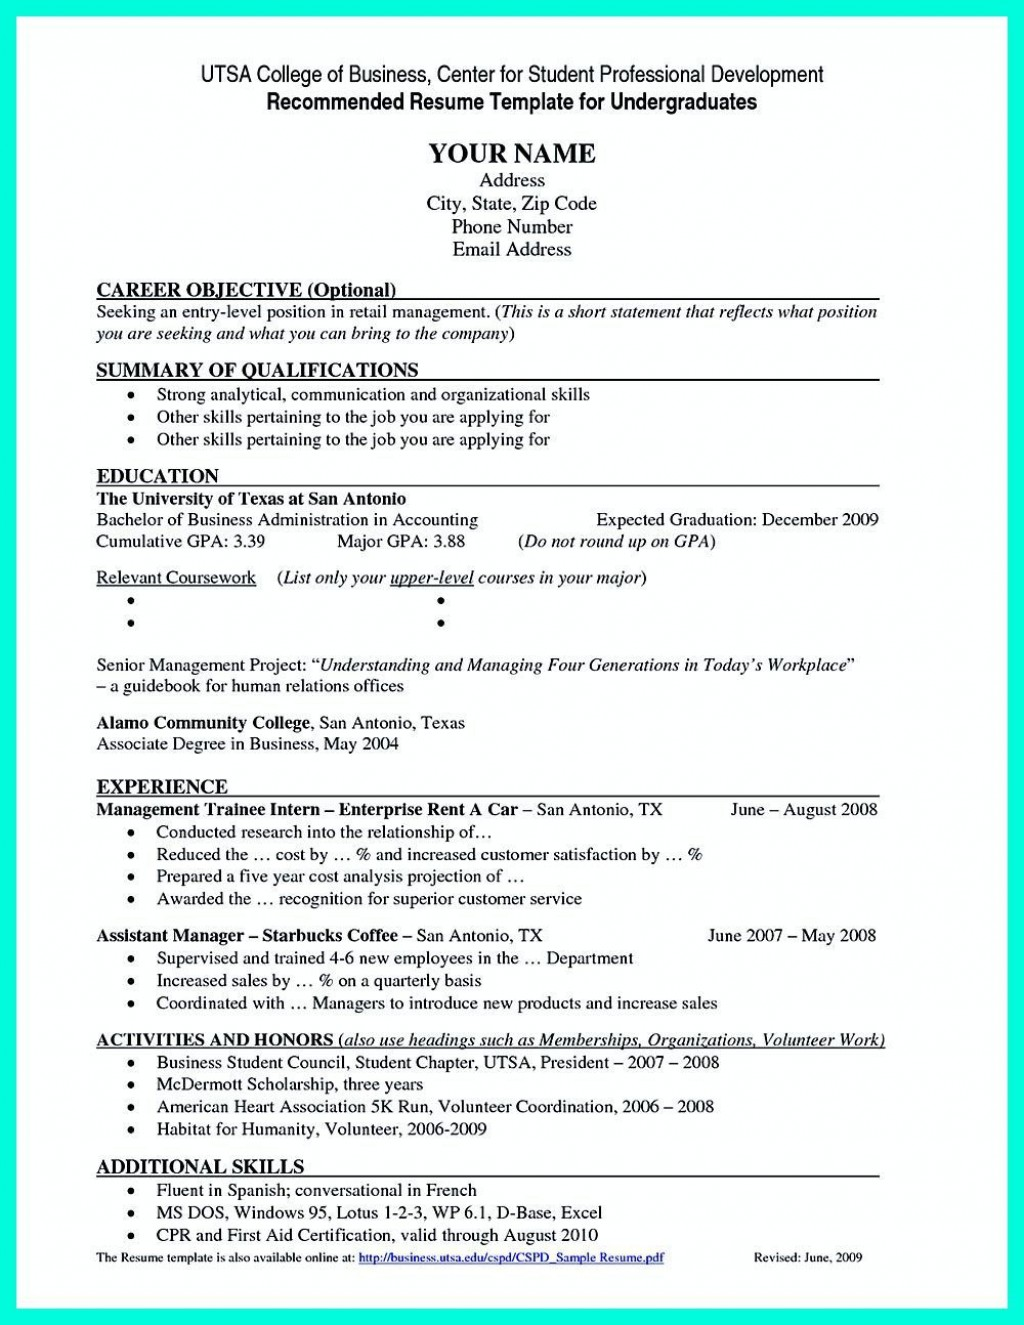 001 Stupendou Curriculum Vitae Template Student High Resolution  Sample College Undergraduate Example For Research PaperLarge